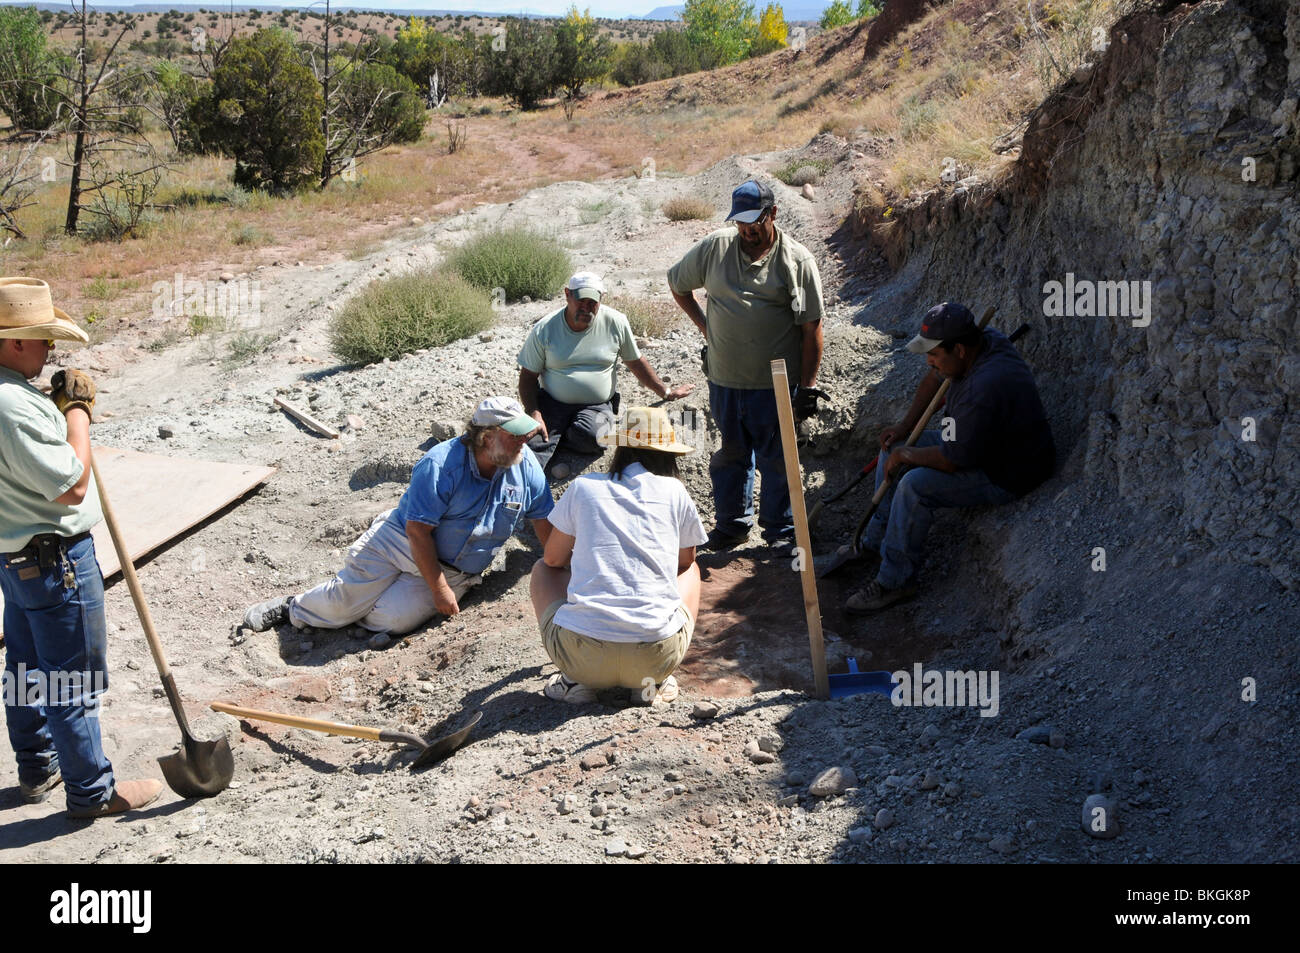 Dinosaur dig site in New Mexico, landscape - Stock Image